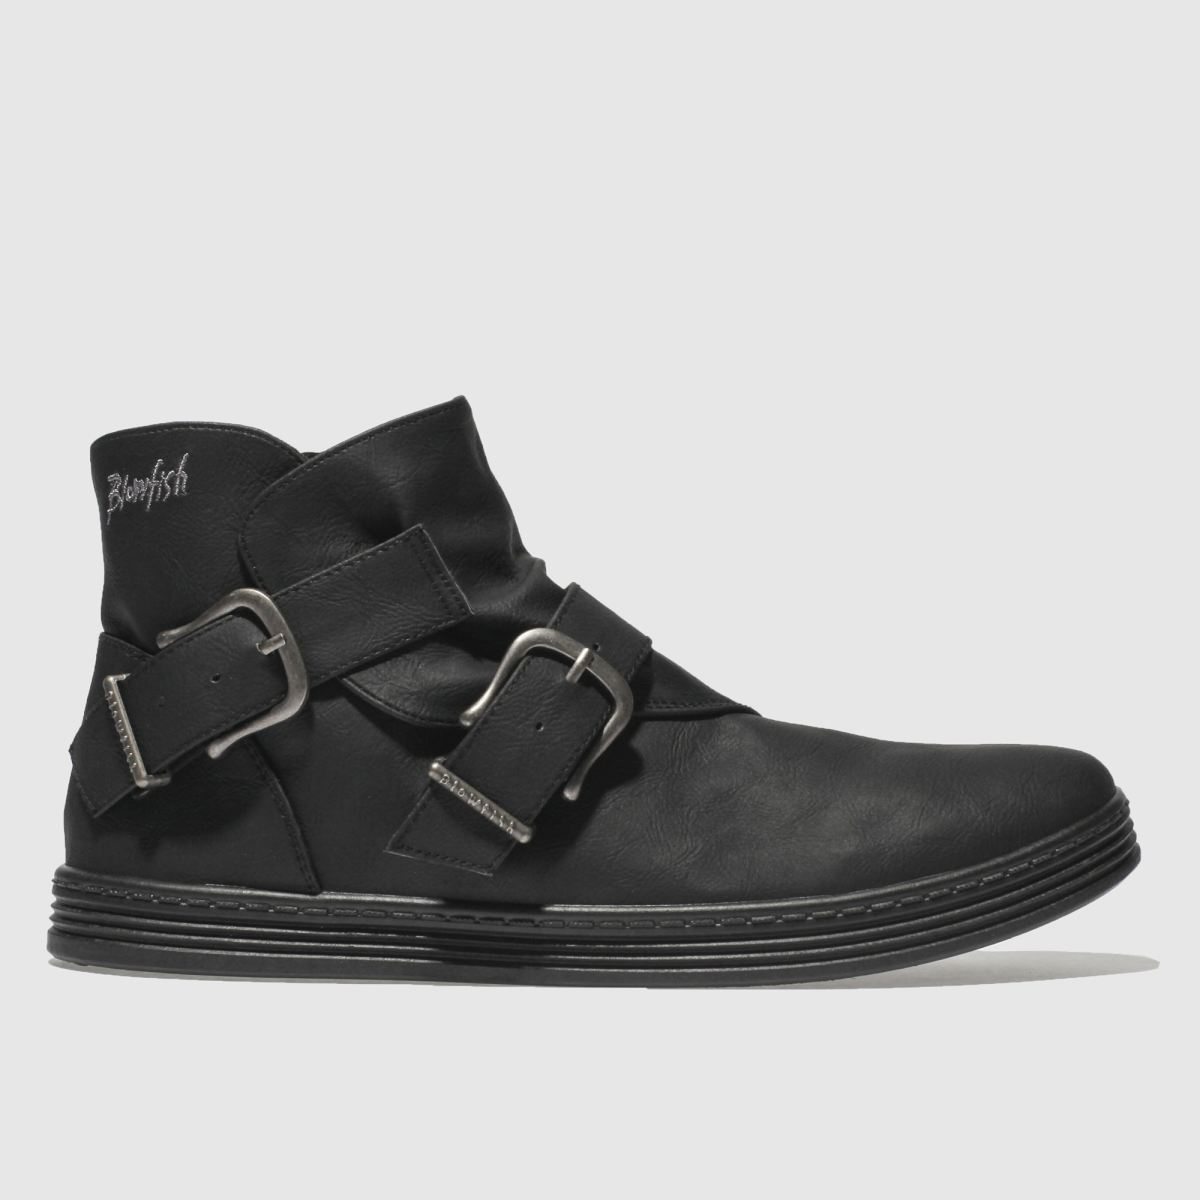 Blowfish Black Frappe Boots